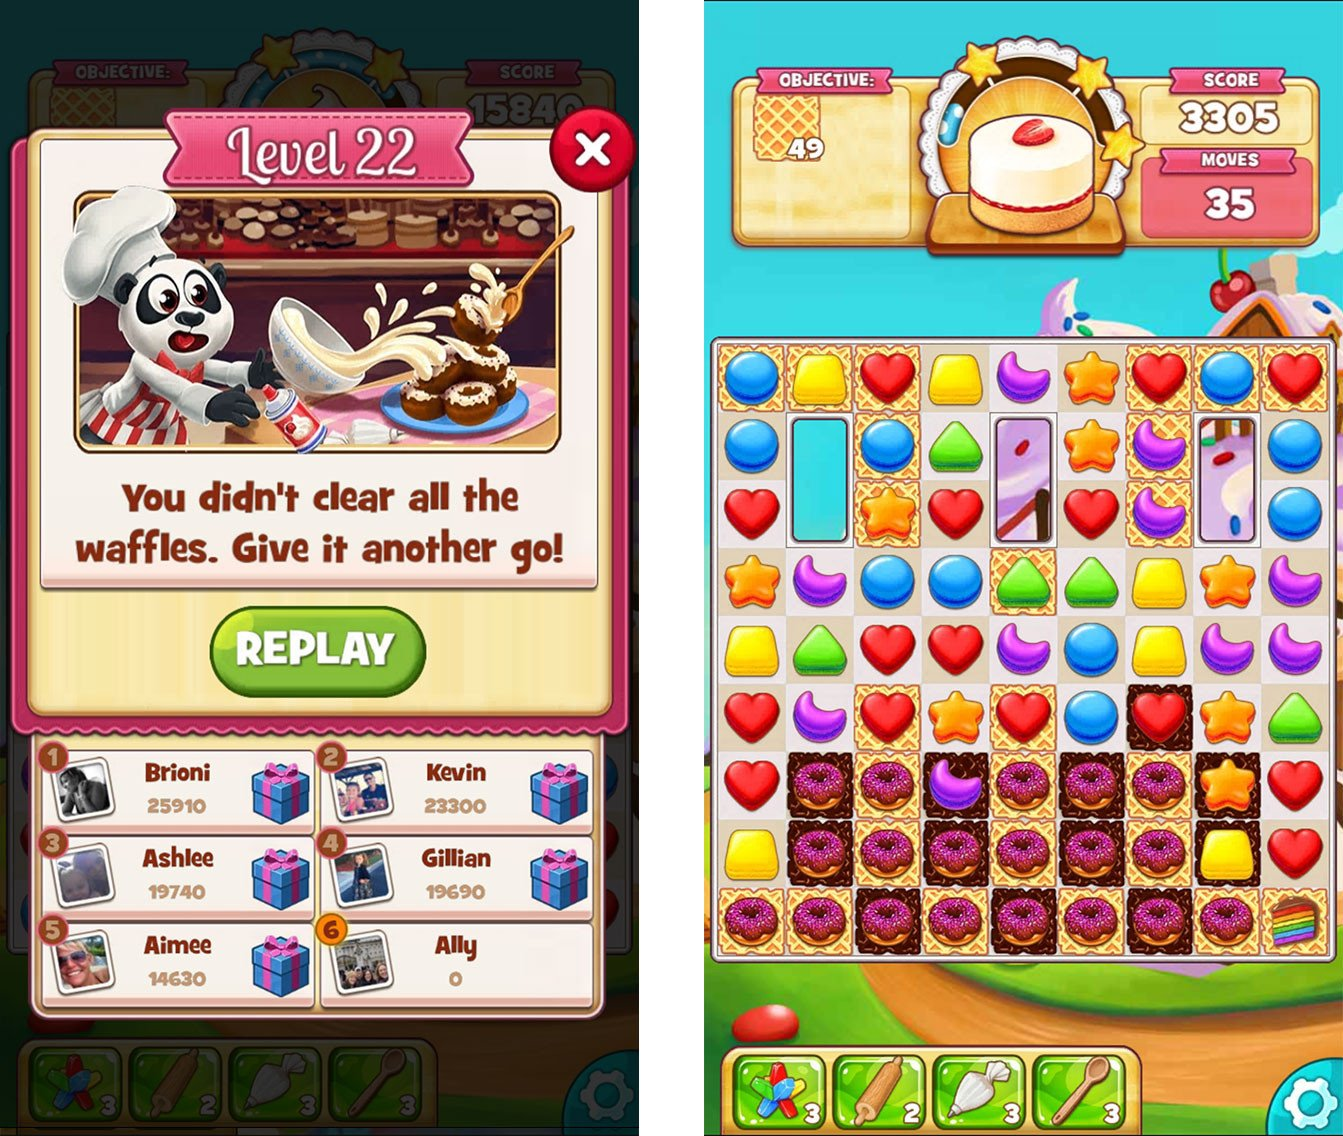 Cookie Jam: Your ultimate tips, hints, and cheats guide!